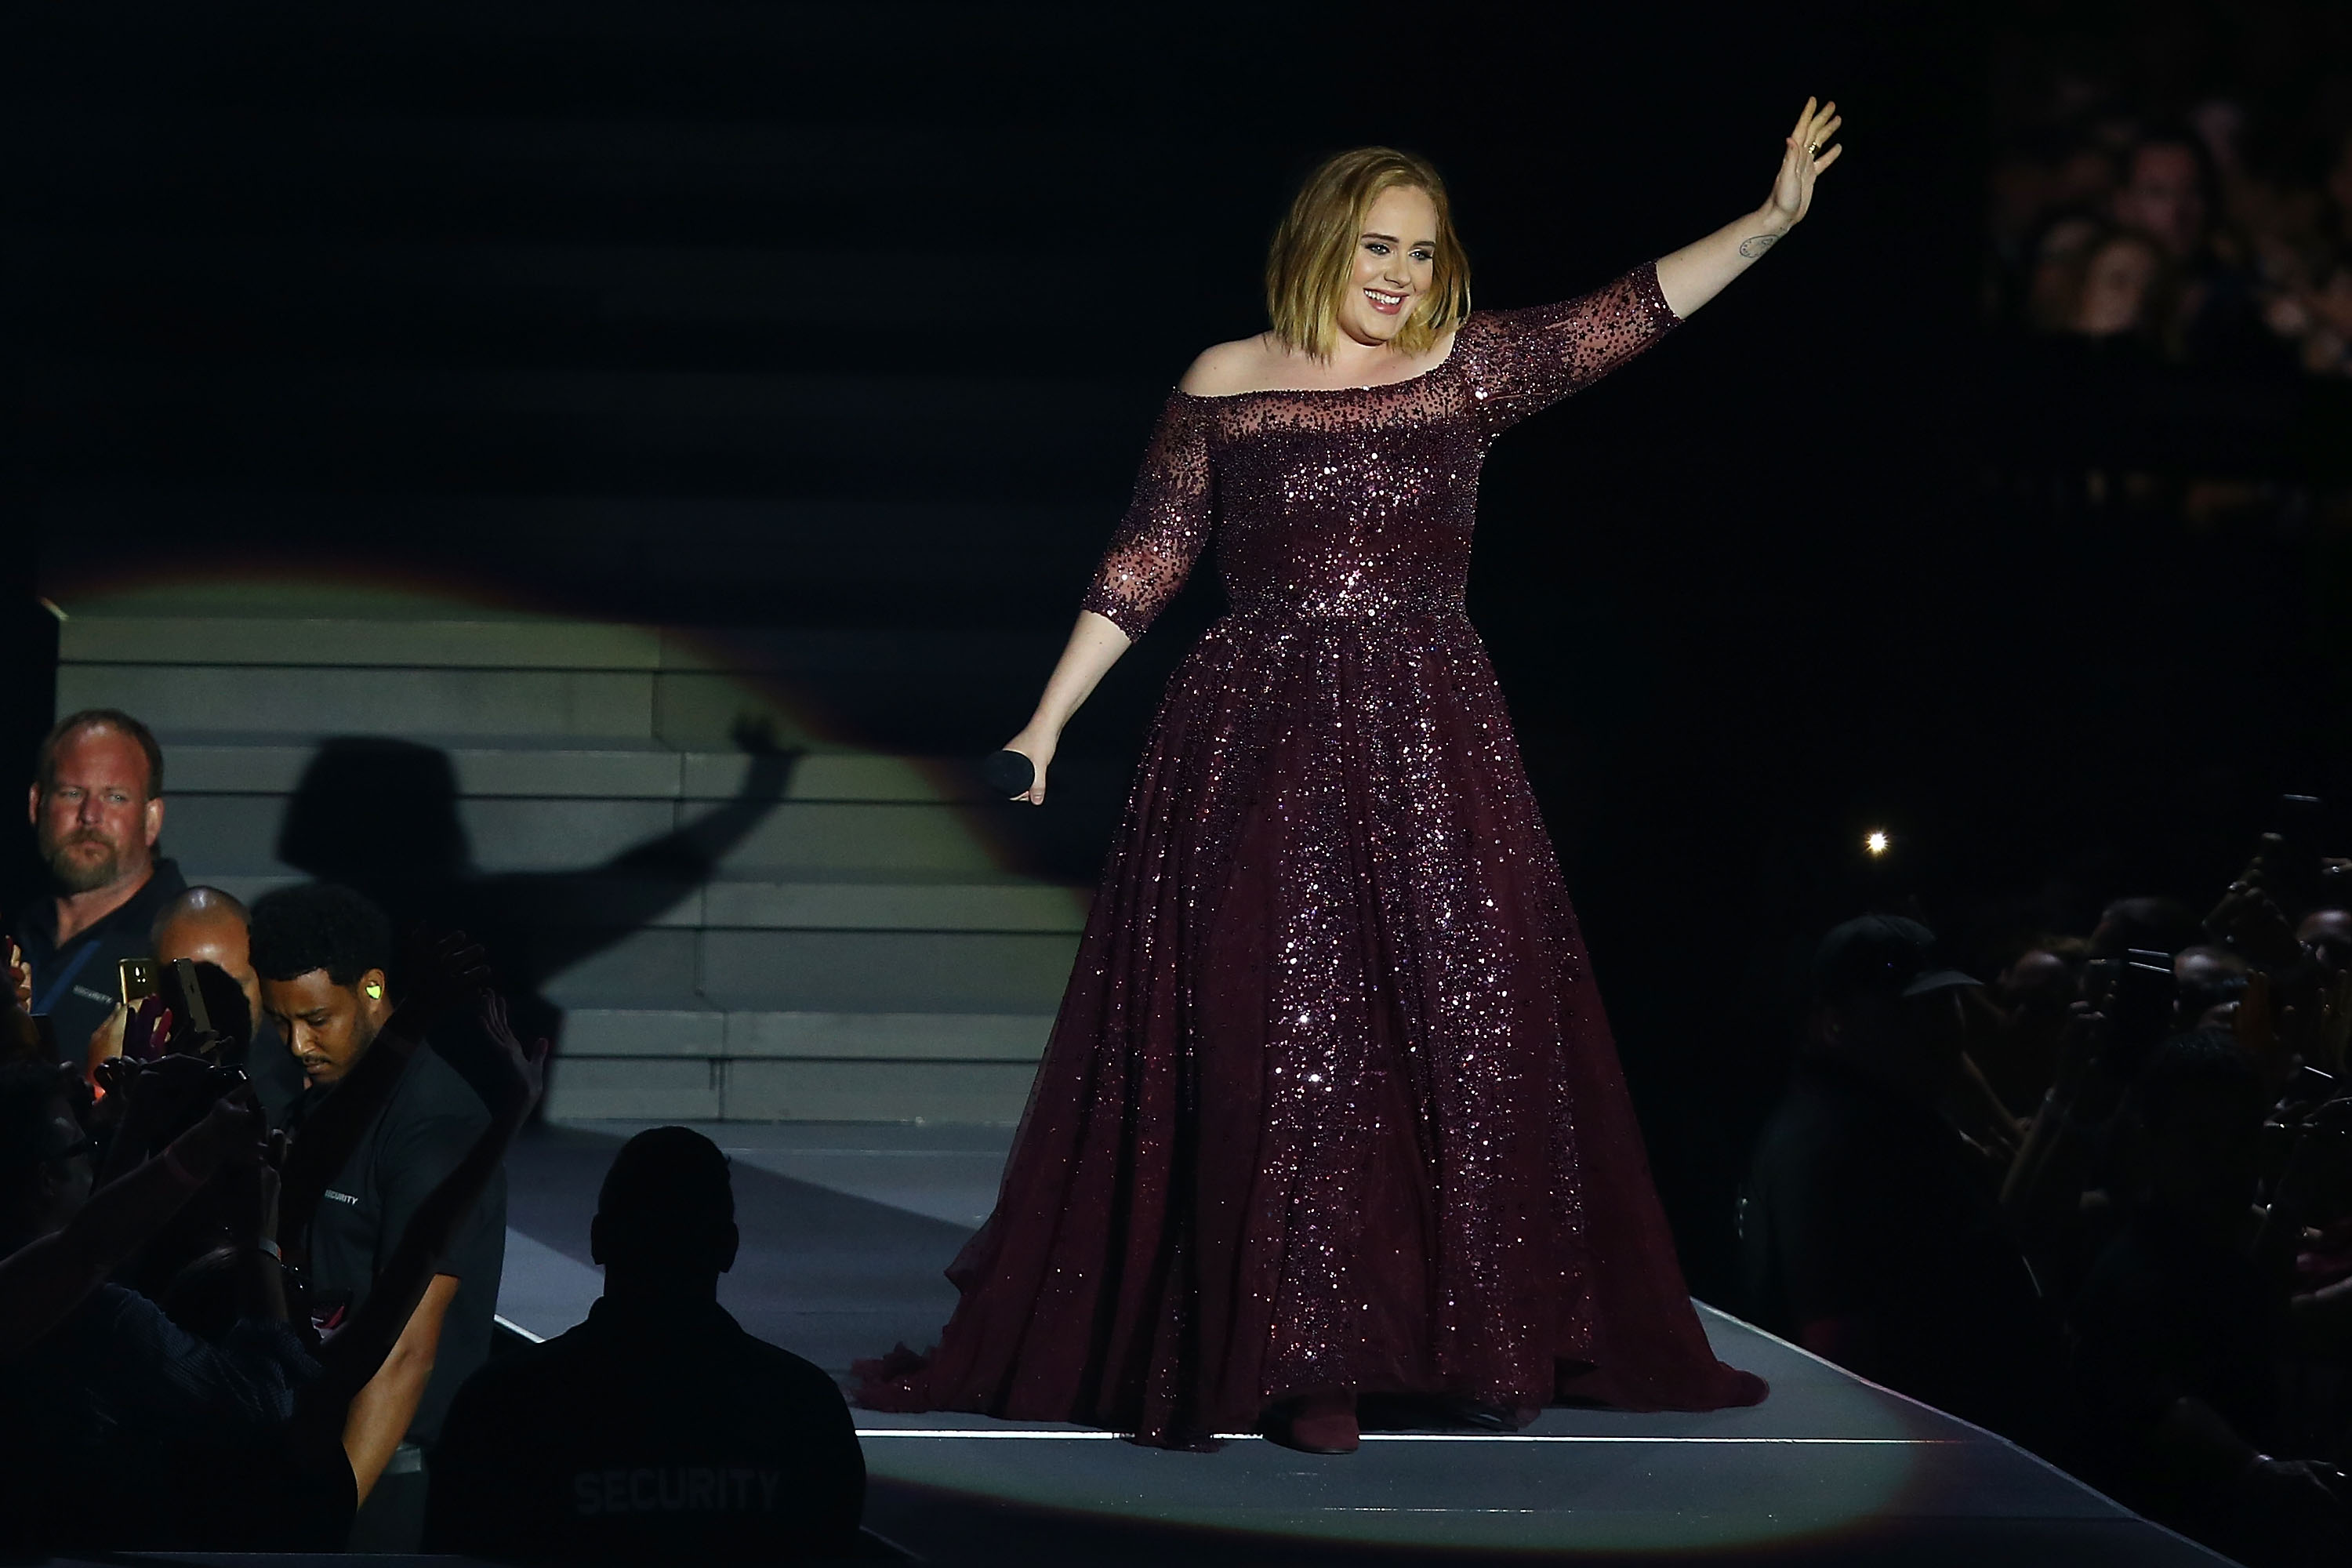 Adele performing in Perth